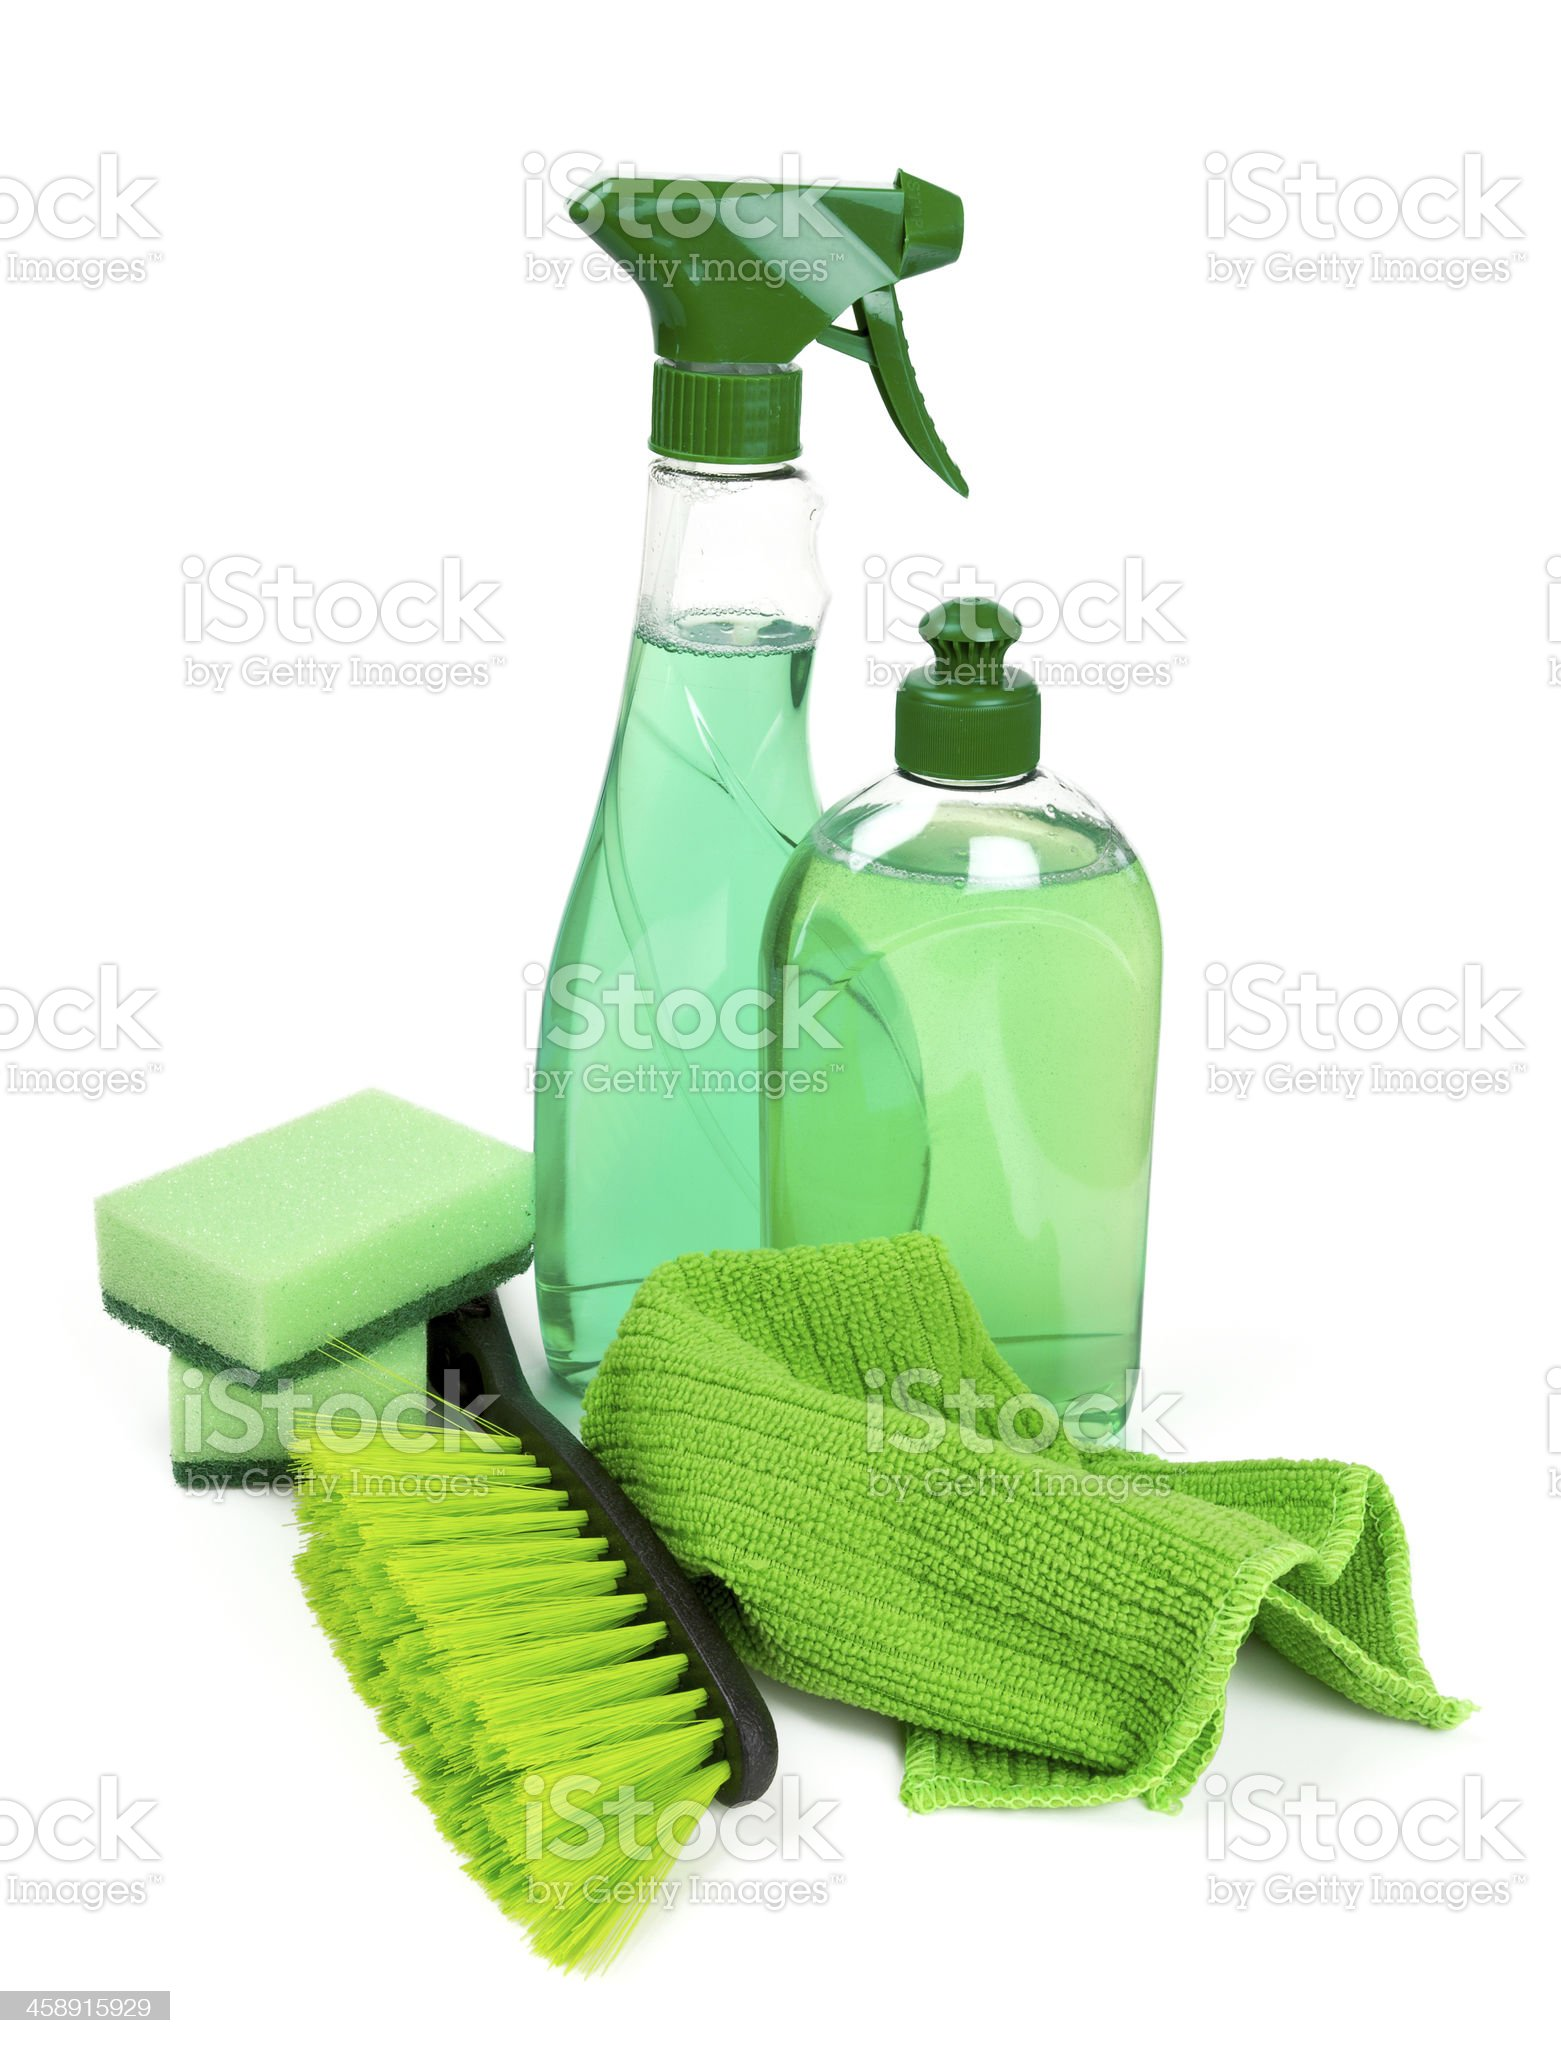 Various green cleaning tools isolated on a white background royalty-free stock photo